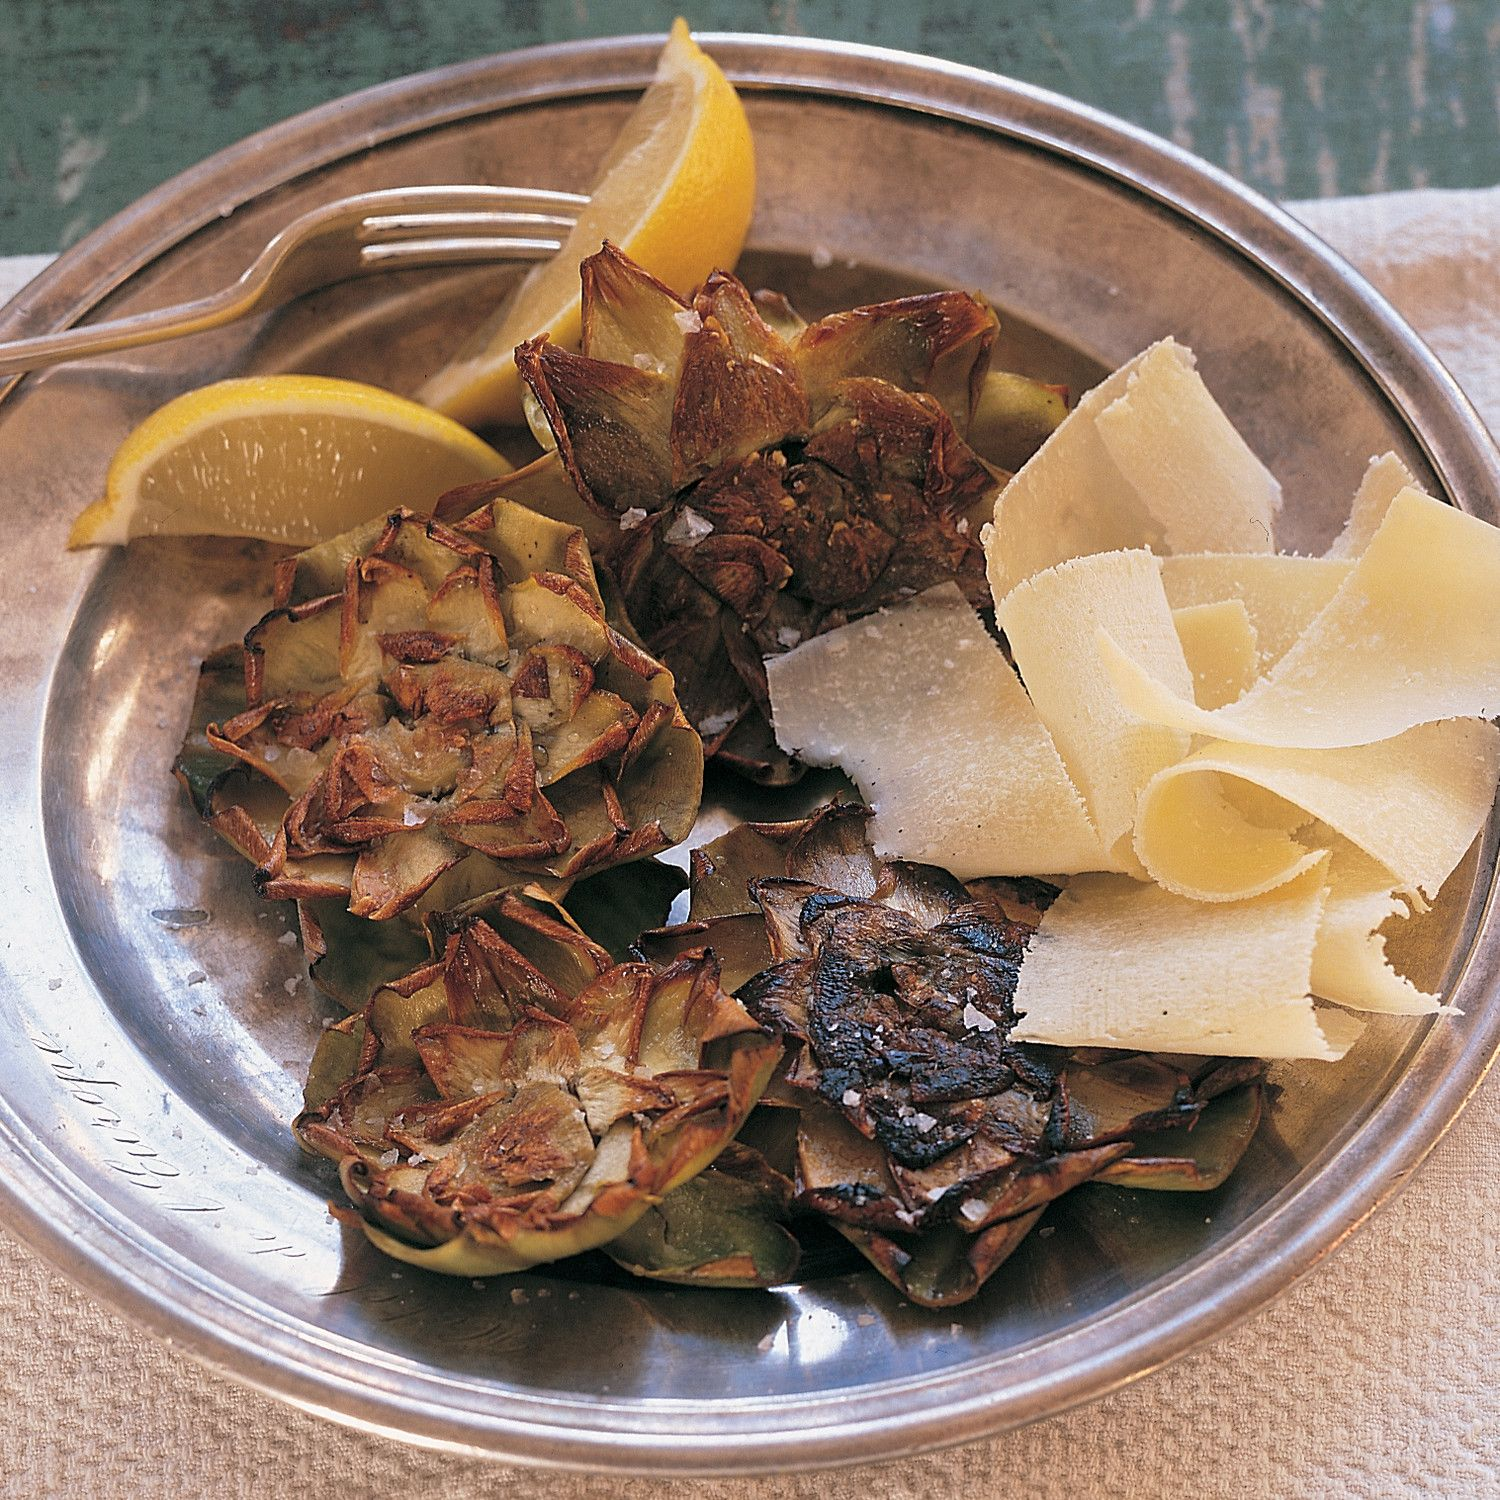 Fry up baby artichokes until crisp for a flavorful treat